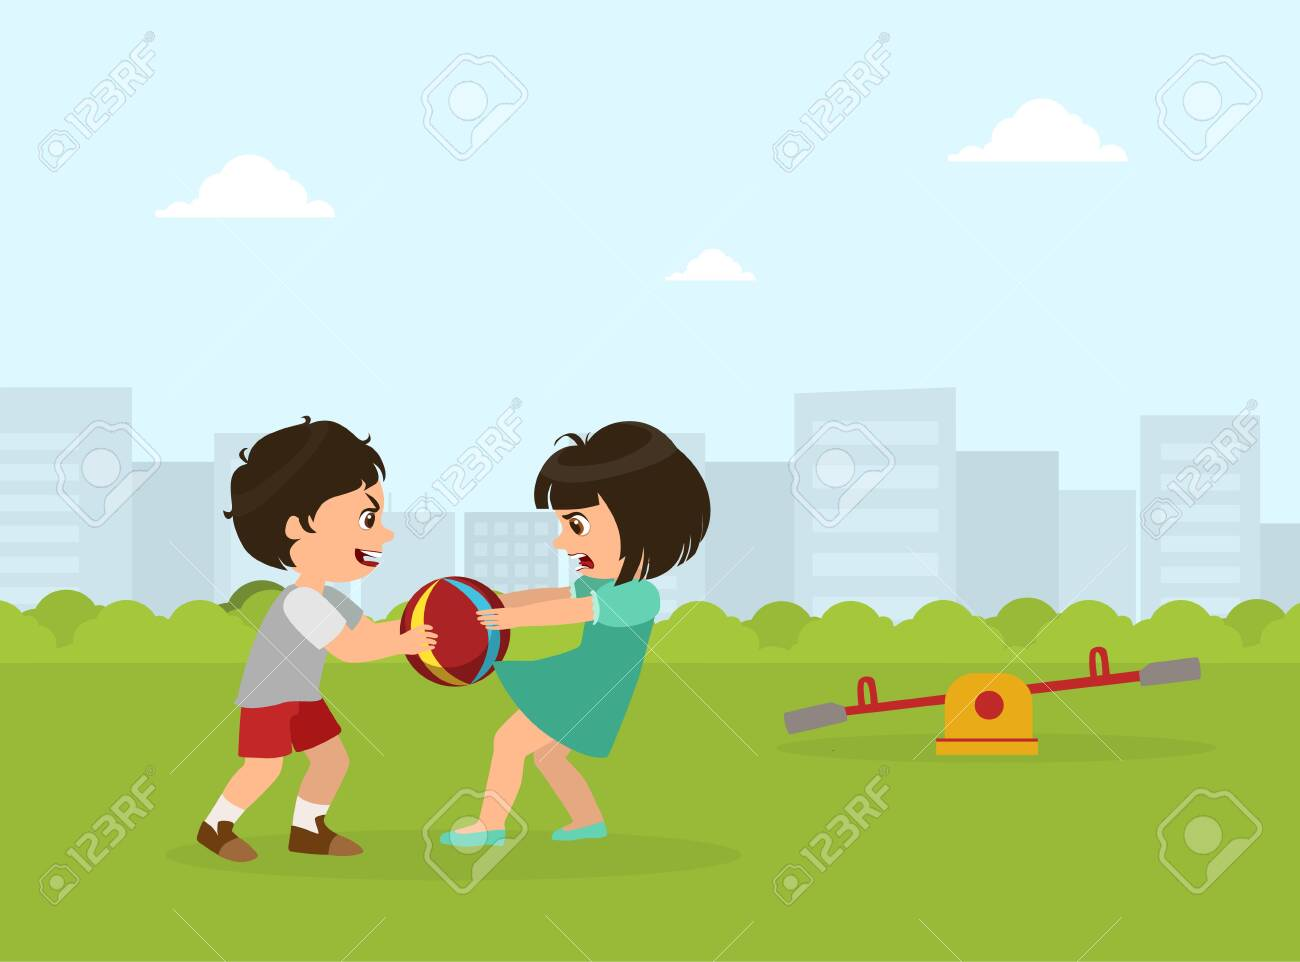 Boy and Girl Fighting for Ball, Bad Behavior, Conflict Between Kids, Vector Illustration in Flat Style. - 128166160